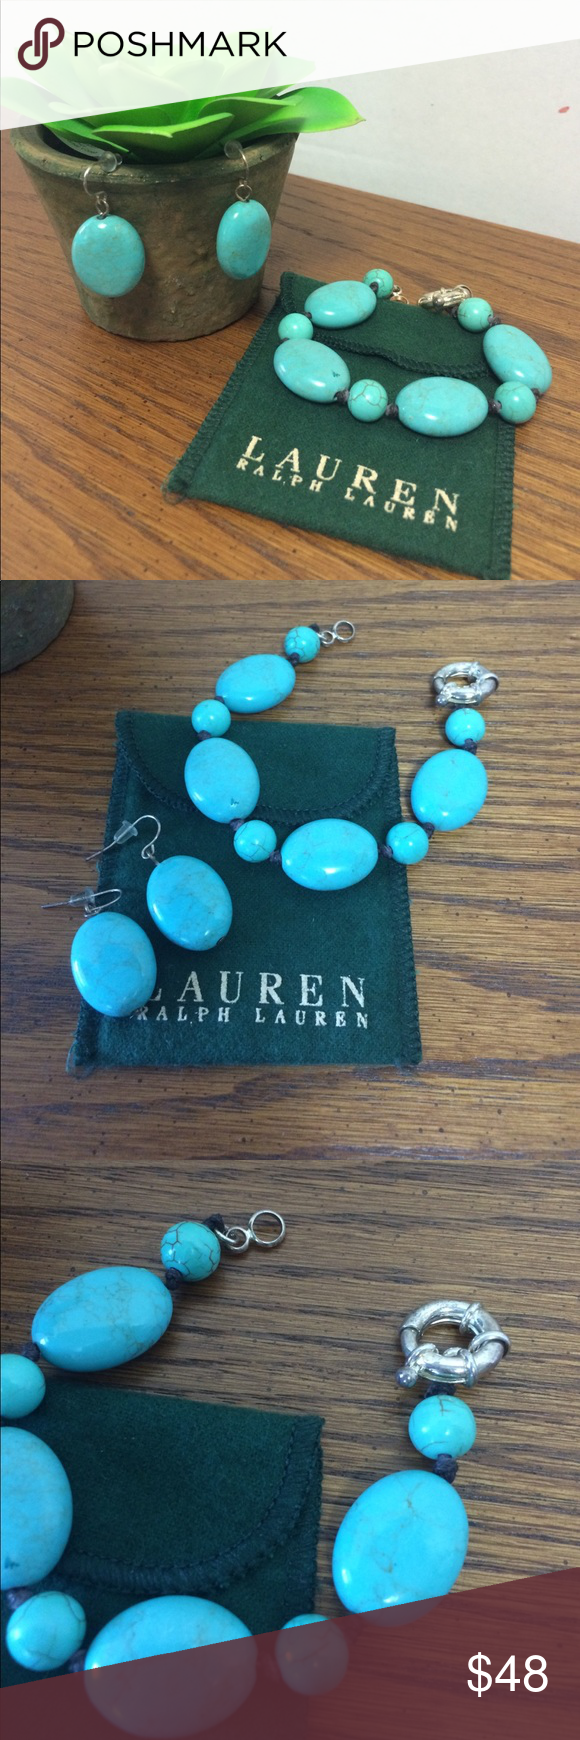 Lauren RL Bracelet and Earrings Set Beautiful.  Gently used condition and see pics.  Slight mark in one stone as pictured but I don't think would be noticed.  Priced accordingly for this eye catching set. I don't see a RL mark.  Based on memory and stored in bag given when purchased.  Worn a few times. Lauren Ralph Lauren Jewelry